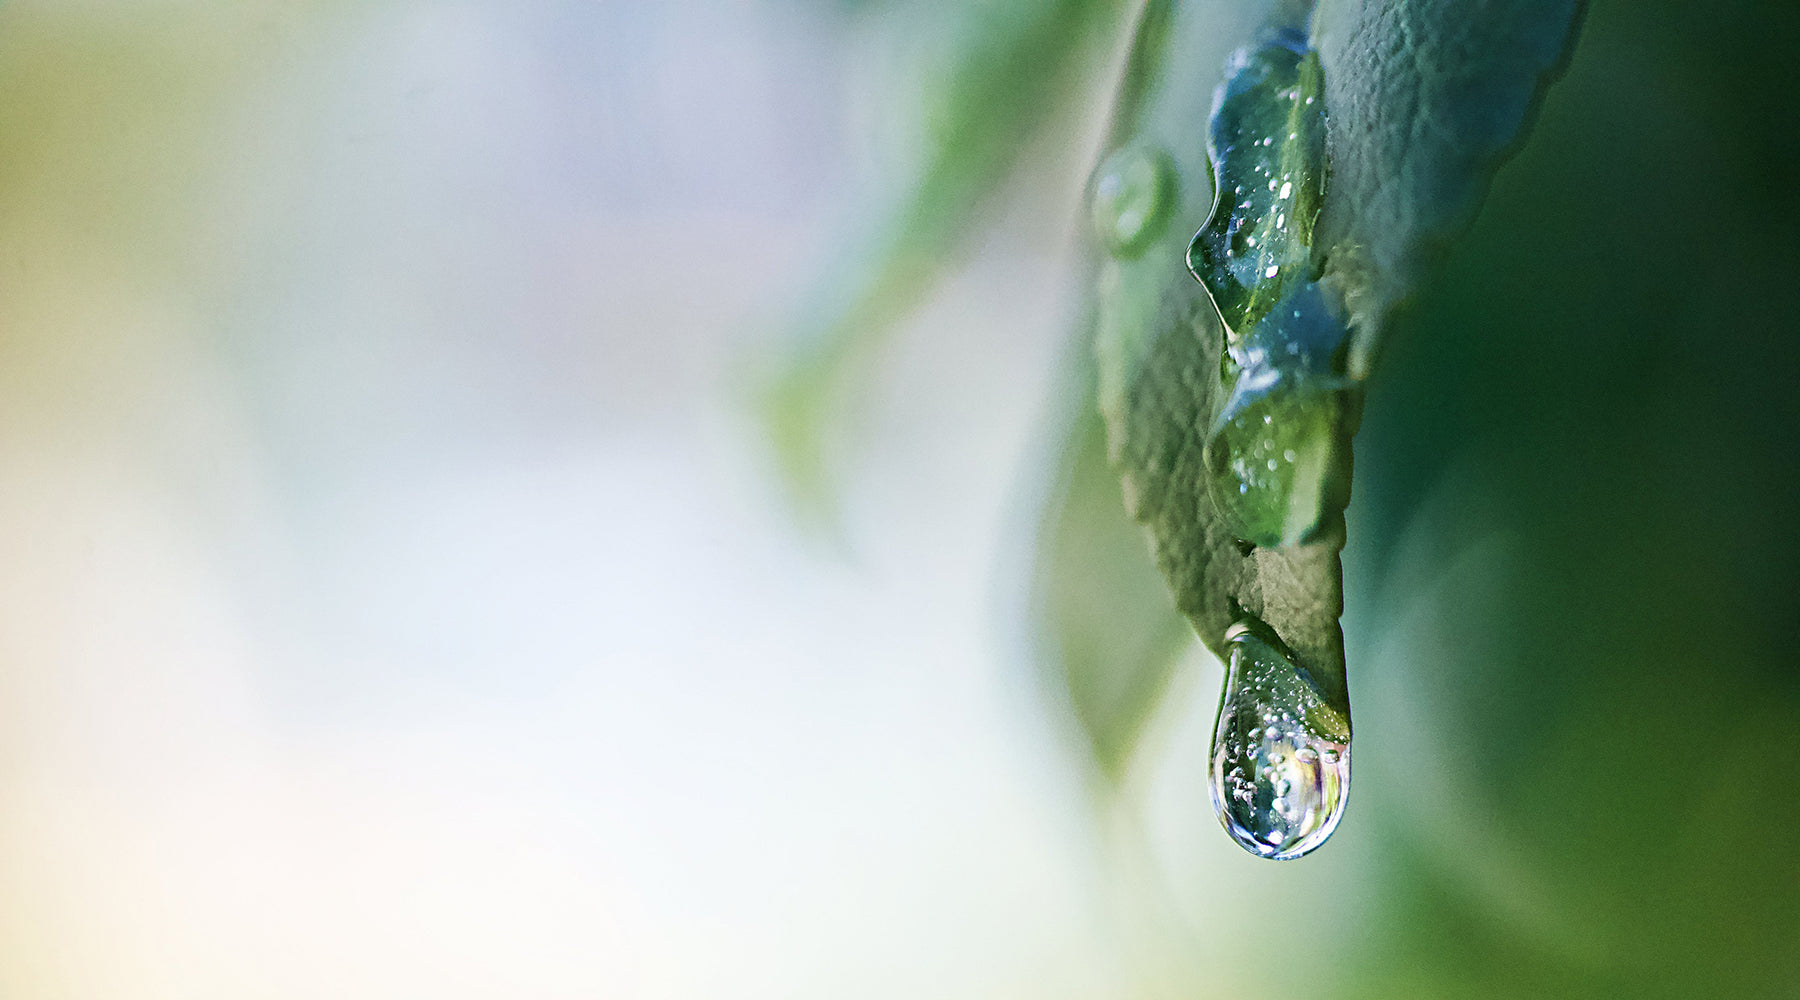 Moisture droplet on green leaf | Nikki Darling Australia